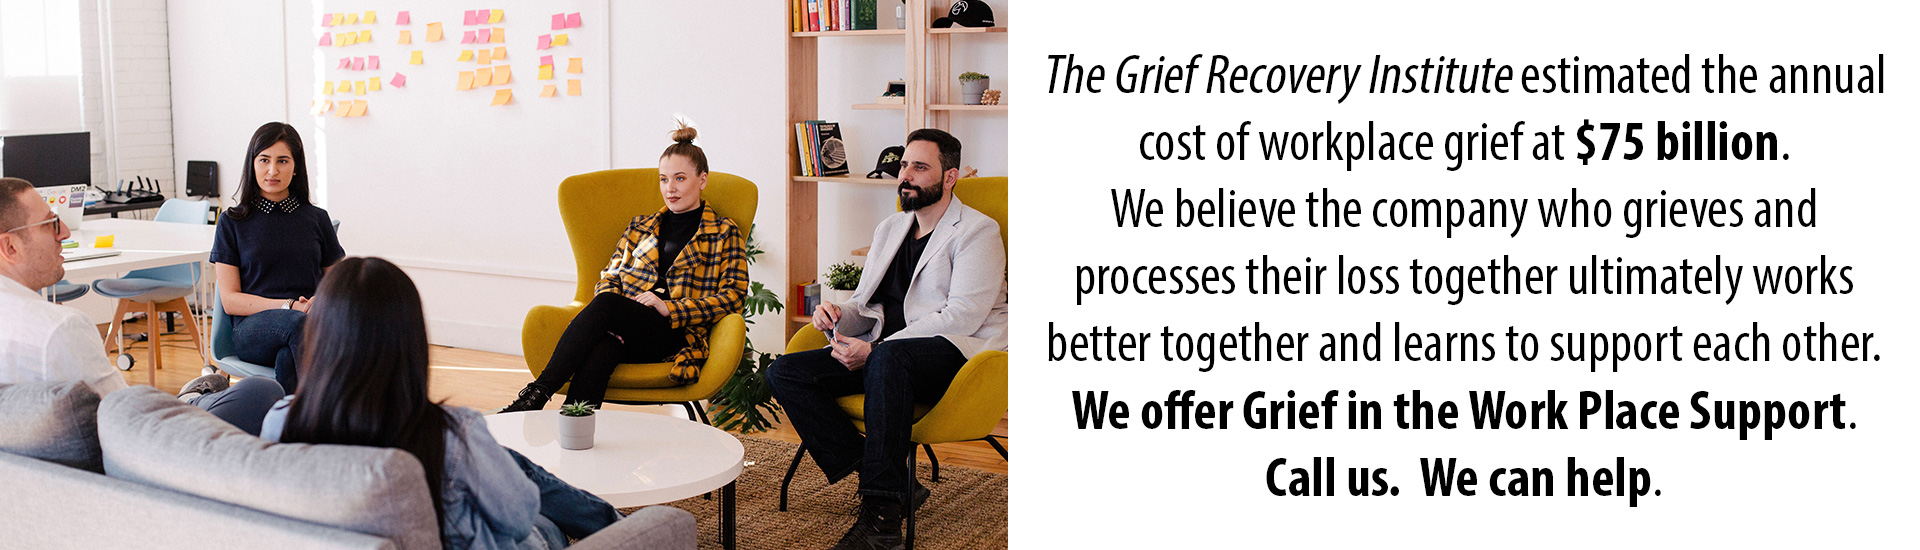 grief-in-the-workplace